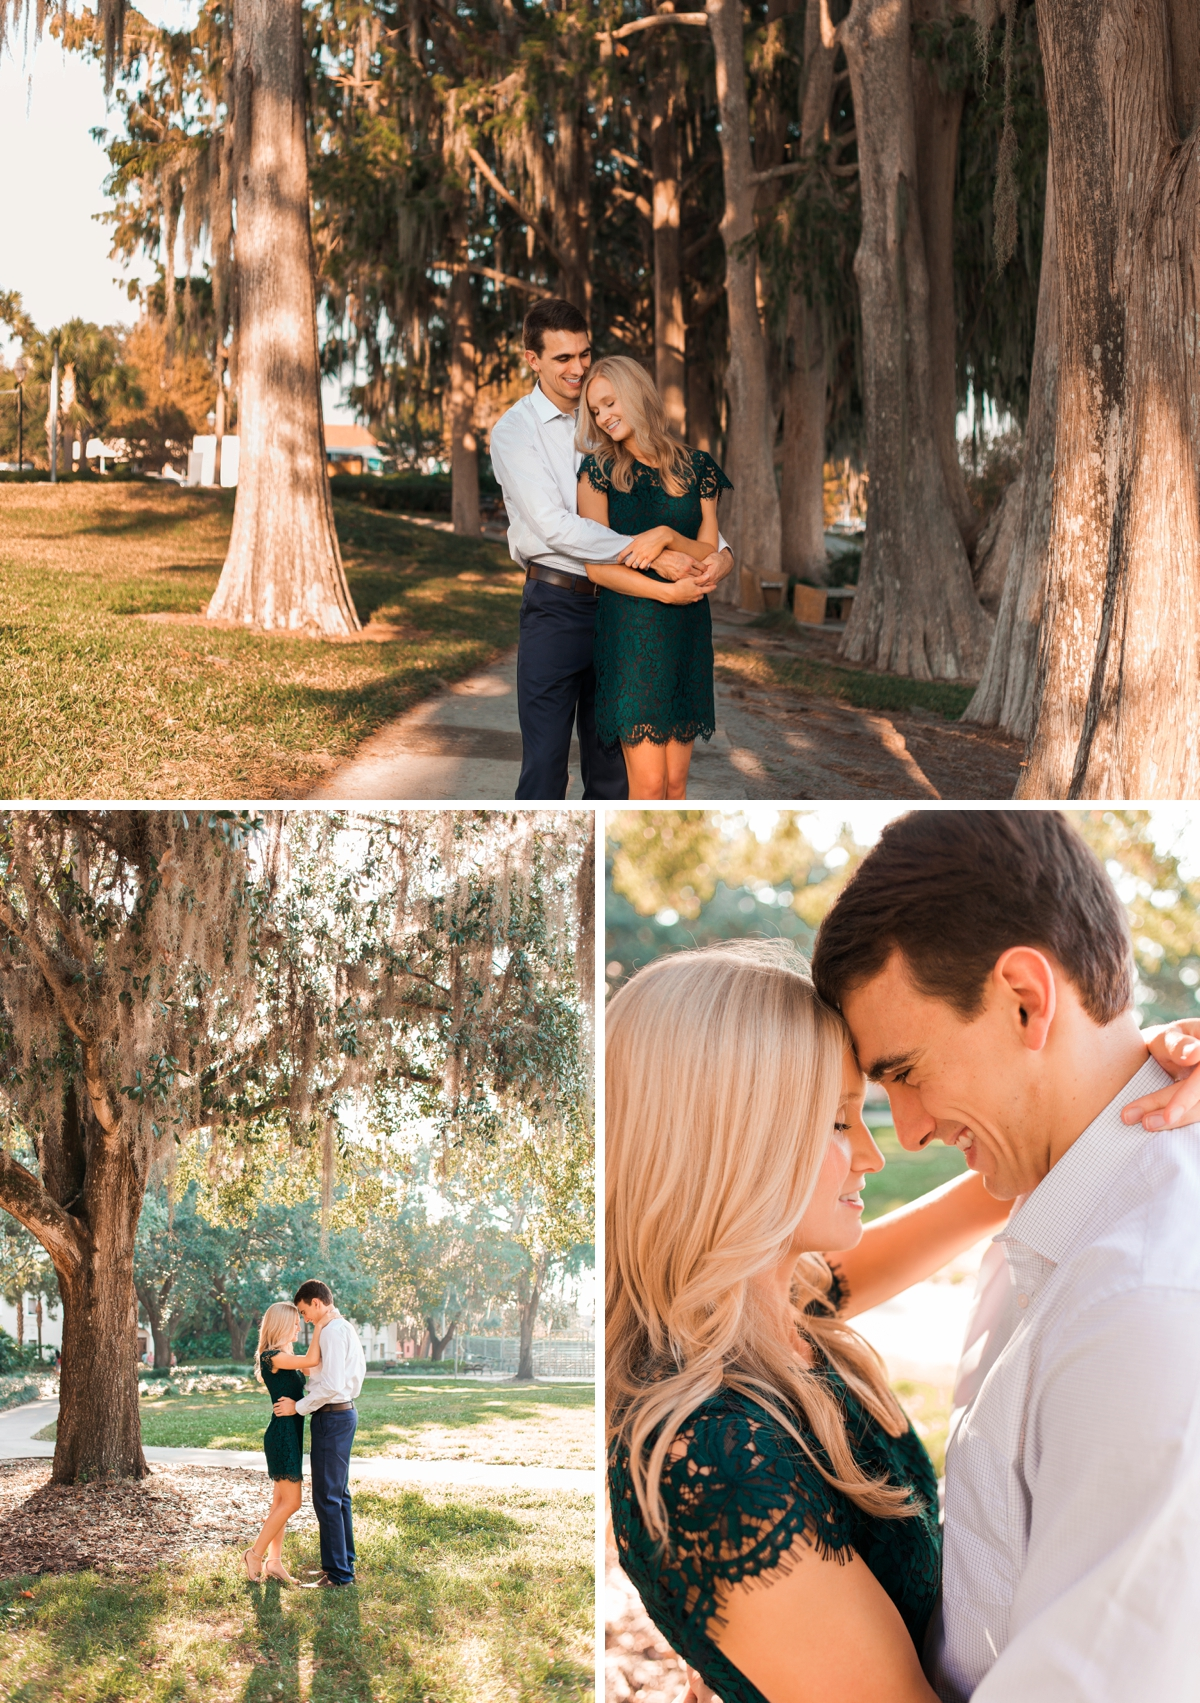 rollins-college-winter-park-orlando-engagement-photography_0004.jpg